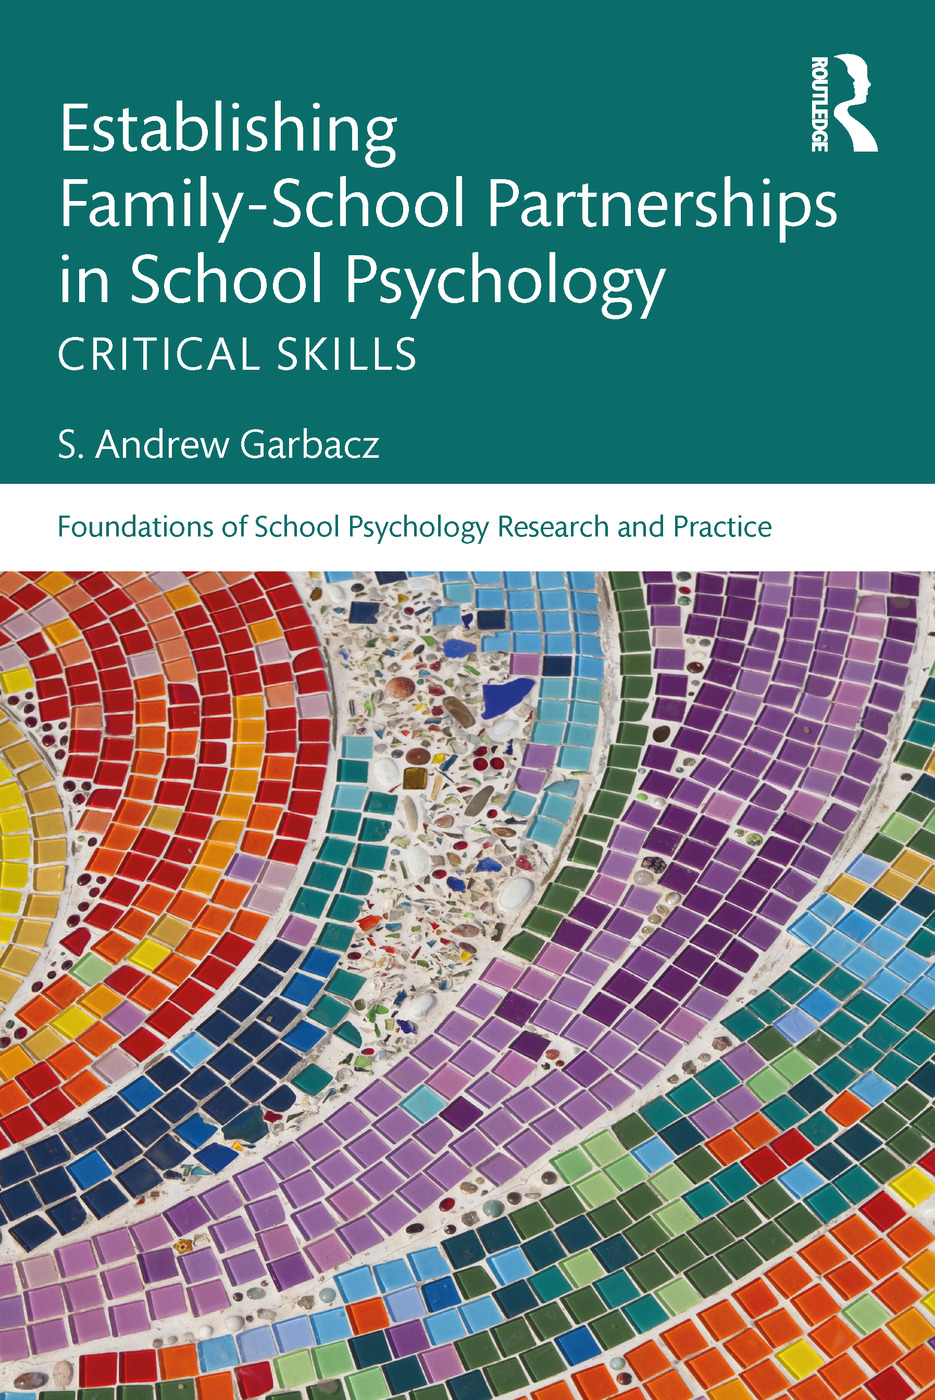 Establishing Family-School Partnerships in School Psychology: Critical Skills, 1st Edition (Paperback) book cover